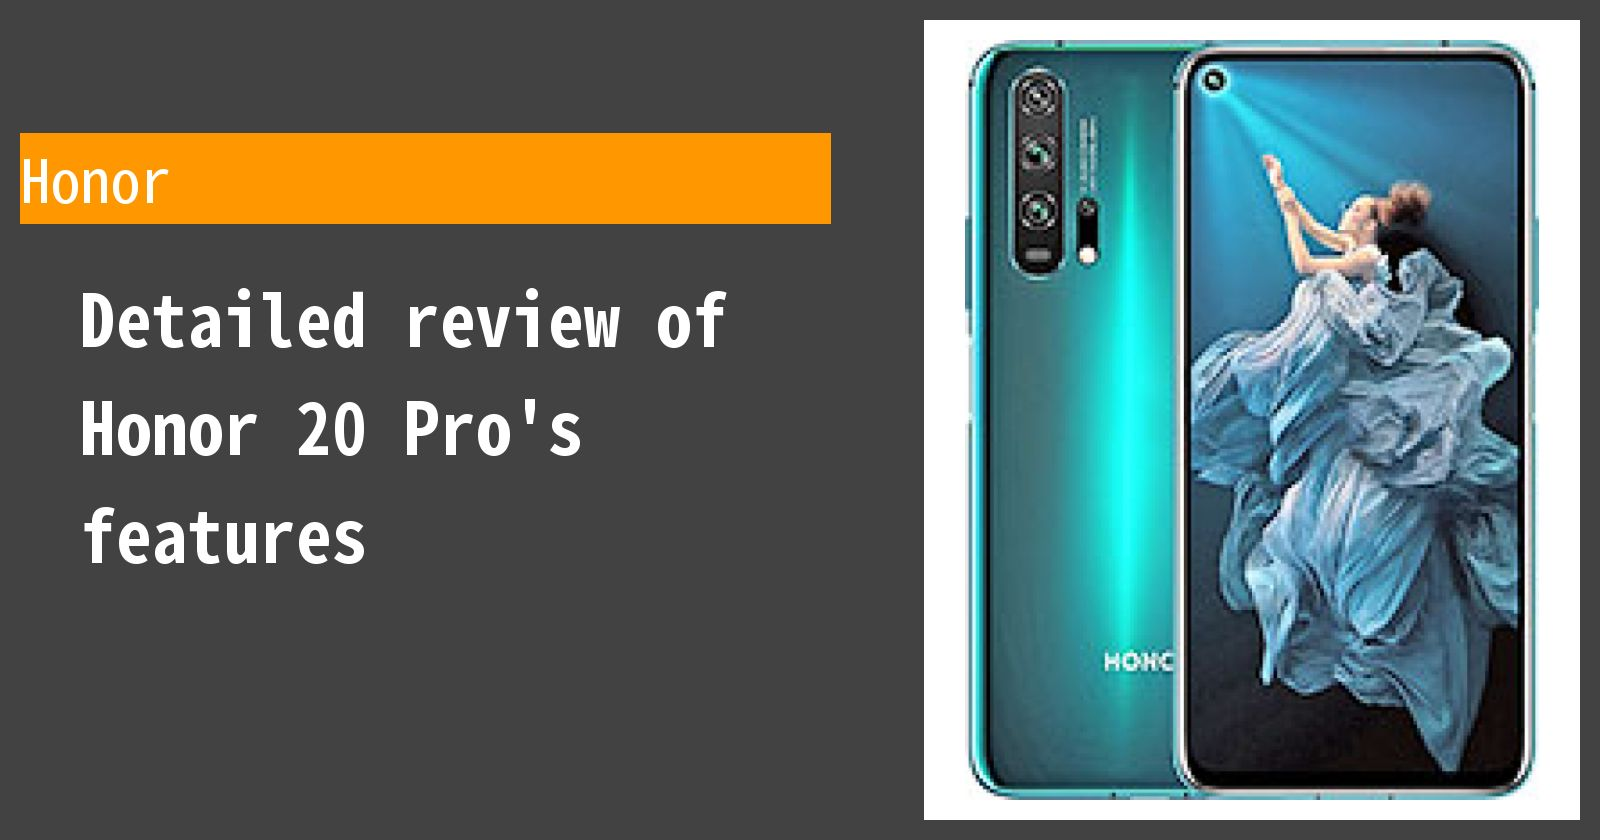 Detailed review of Honor 20 Pro's features